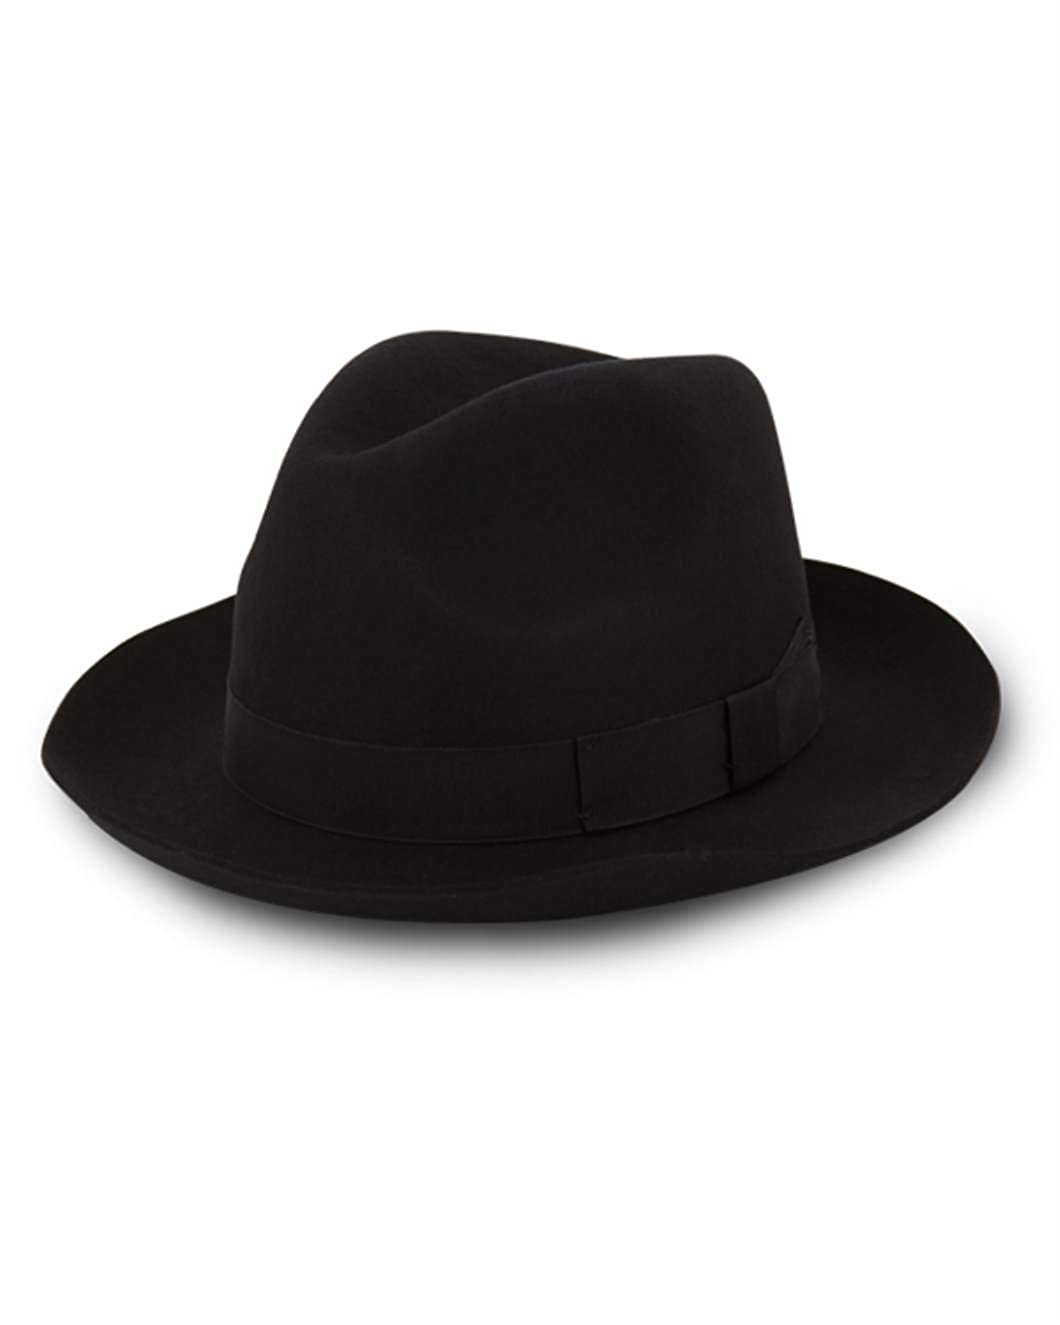 Christys of London Chepstow 100/% Wool Black Trilby Hat-62